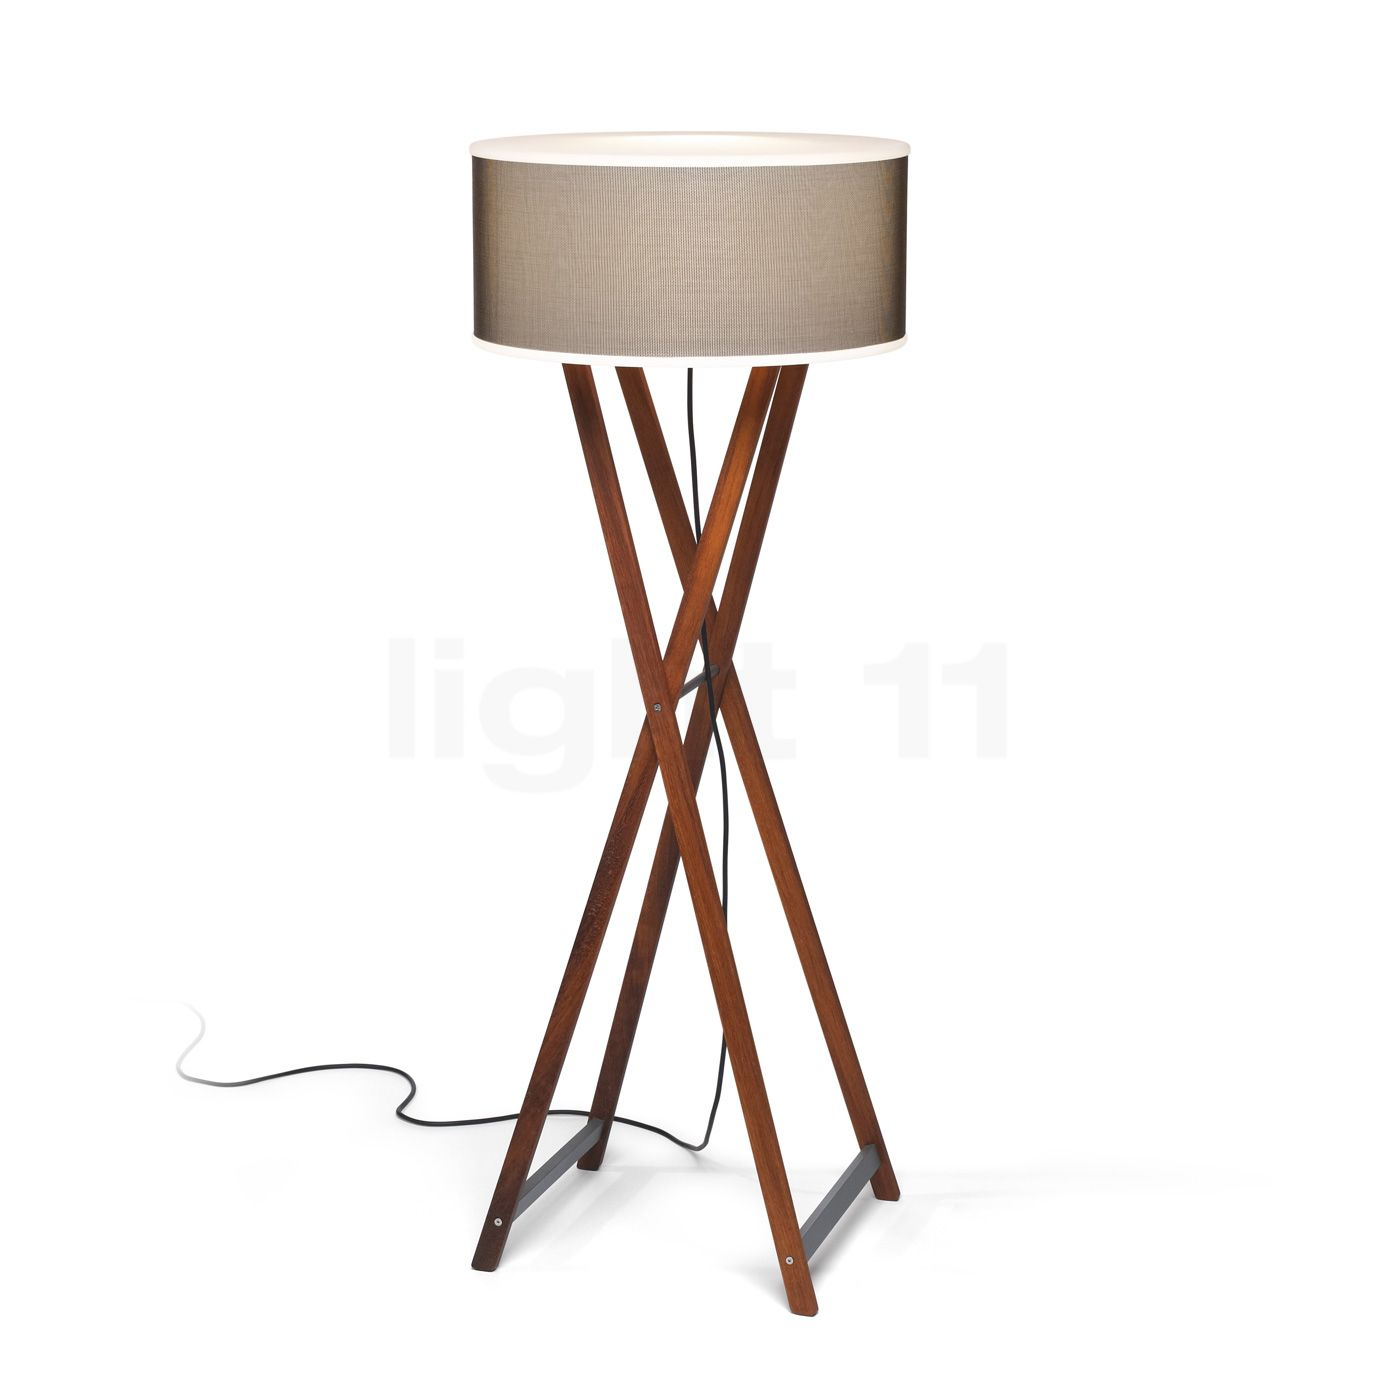 floor lighting outdoor dome insitu lamps table lamp move image free standing and